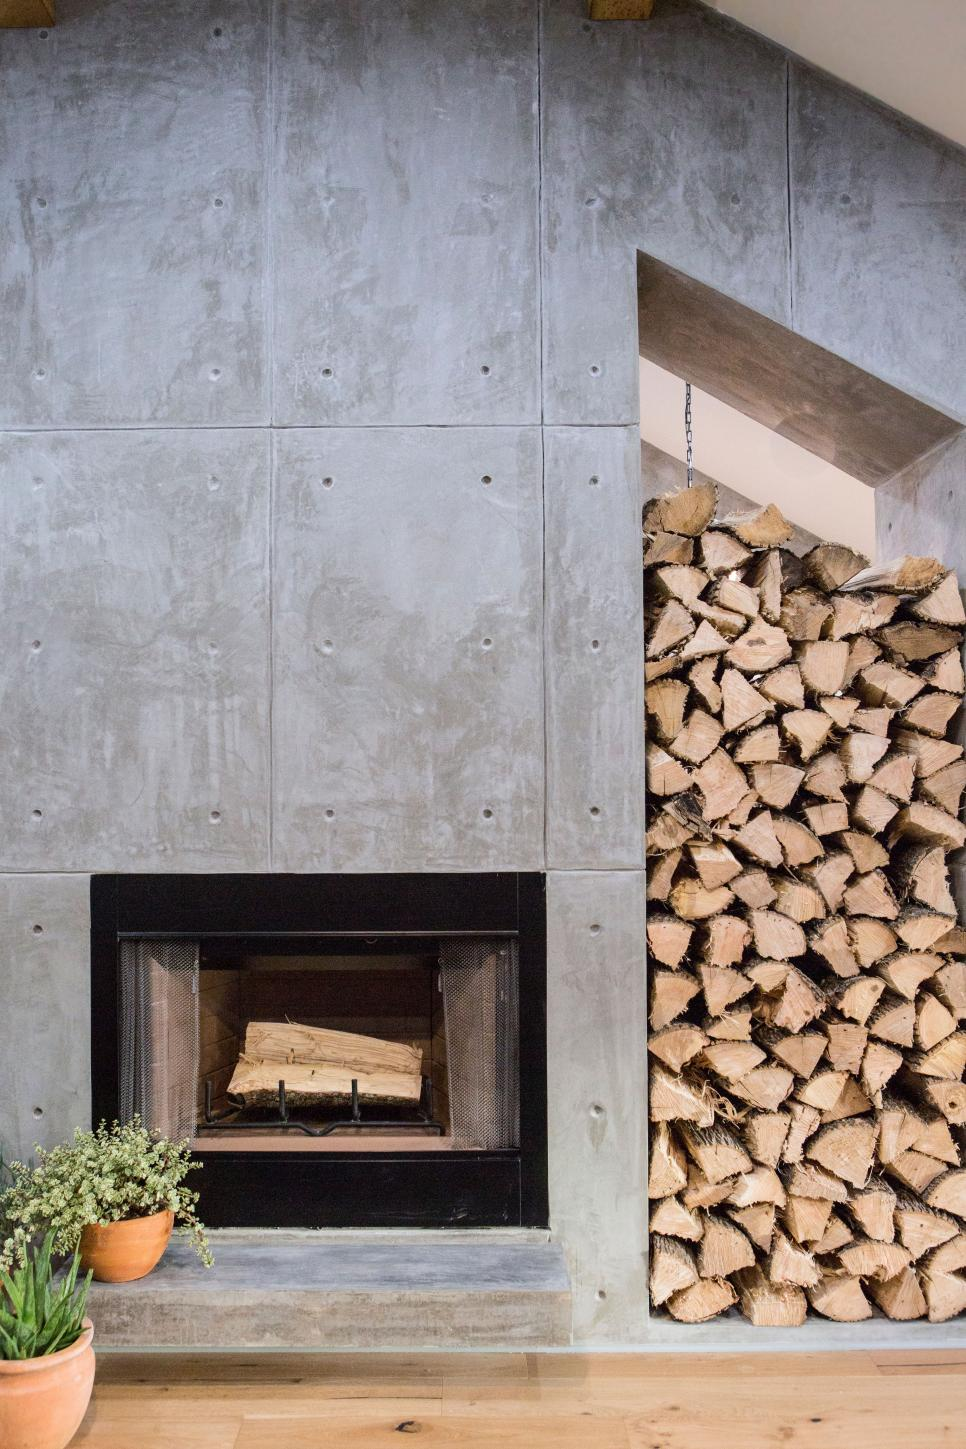 BP_HFXUP410H_living-room_detail_fireplace_252627_917498-1463490.jpg.rend.hgtvcom.966.1449